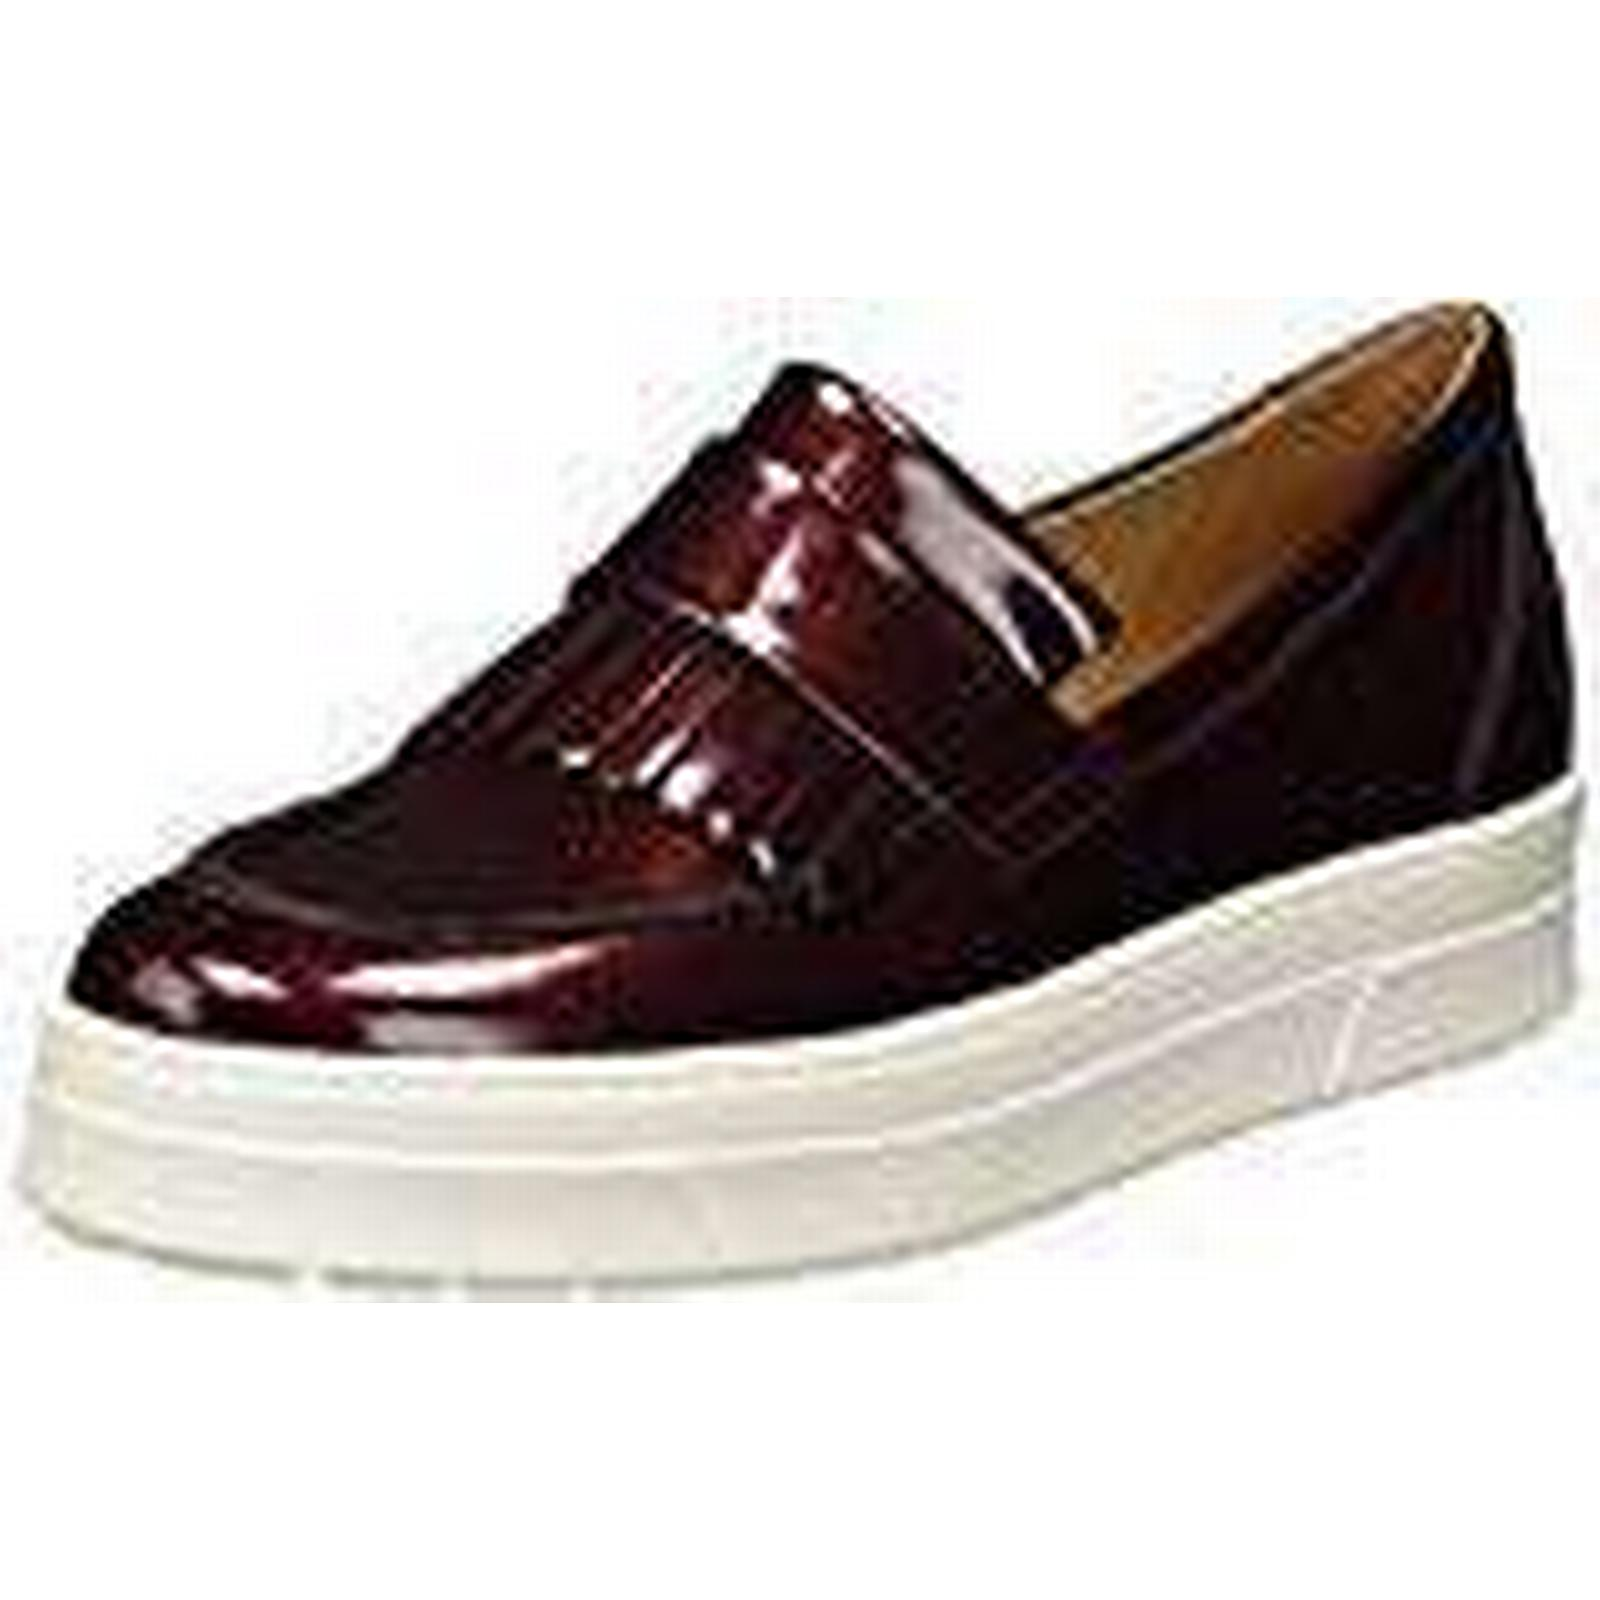 CAPRICE Loafers, Footwear Women's 24750 Loafers, CAPRICE Red (3), 5.5 UK aef851